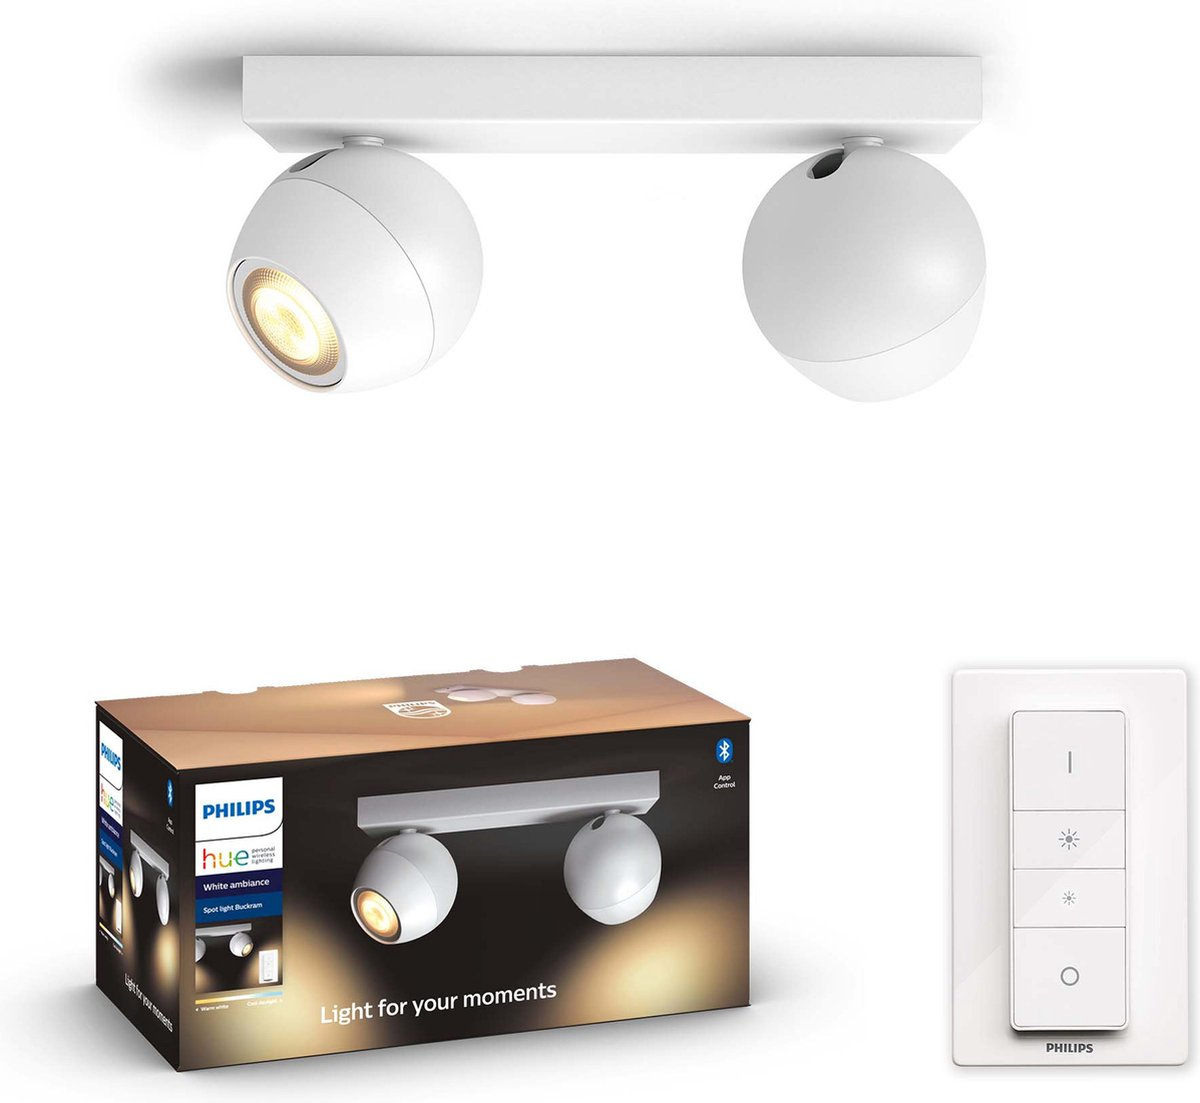 Philips Hue - BUCKRAM White 2x5.5W - White Ambiance - Bluetooth Included Dimmer